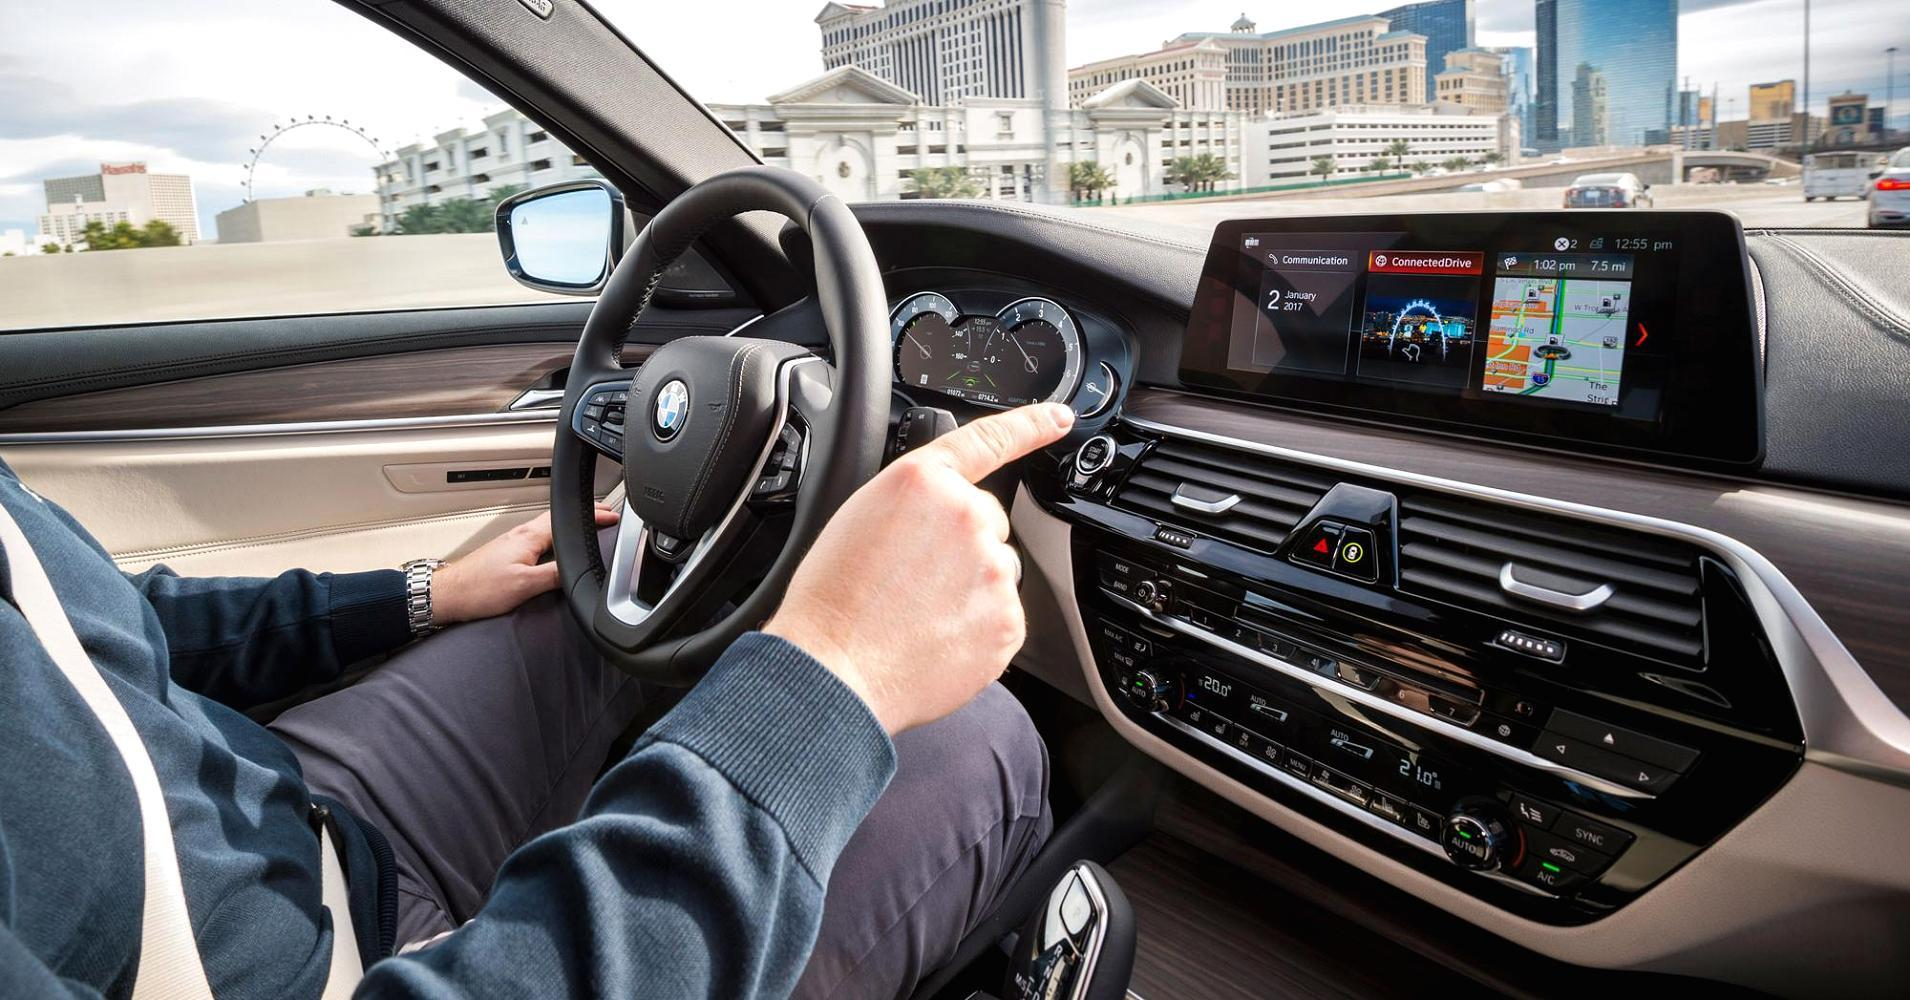 CNBC got a chance to take BMW's new self-driving car out for a spin. Here's what it was like